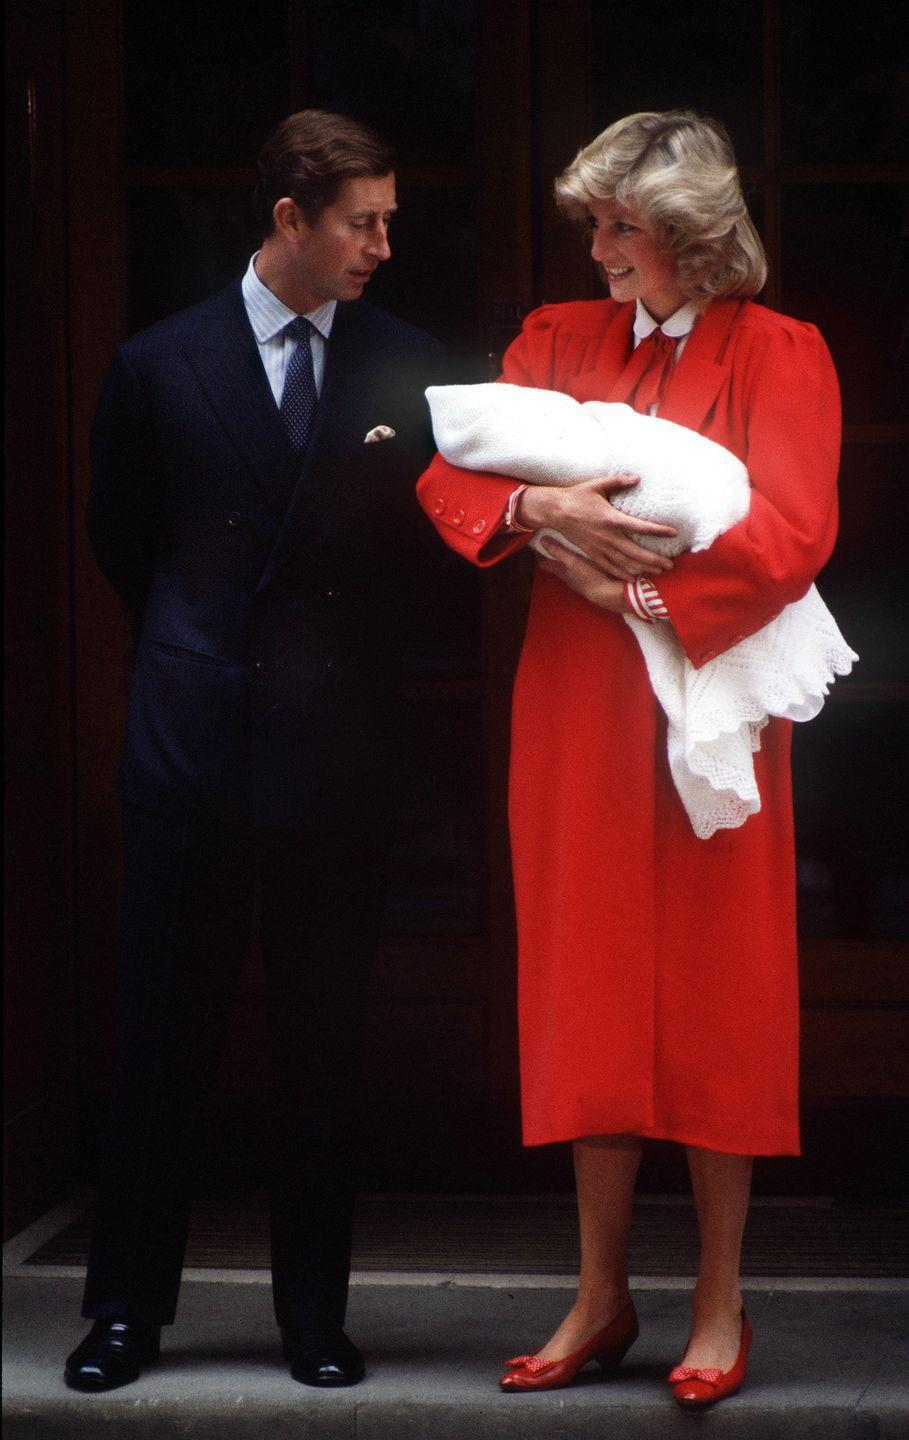 """<p>Prince Harry arrived a week early and was born at 4:20 p.m. on September 15, 1984 in the Lindo Wing of St. Mary's Hospital, just like his older brother. Diana read a book for the first six hours of her <a href=""""http://people.com/archive/cover-story-hello-harry-vol-22-no-14/"""" rel=""""nofollow noopener"""" target=""""_blank"""" data-ylk=""""slk:nine-hour labor"""" class=""""link rapid-noclick-resp"""">nine-hour labor</a>, and Charles napped in a chair next to the bed. When the big moment came Diana """"sucked on an ice cube to prevent dehydration during the delivery, while a nurse rubbed her chapped lips with cream,"""" <em>People</em> reports.</p><p><em>Left</em>: Princess Diana and Prince Charles leave the Lindo Wing of St. Mary's Hospital with Prince Harry in September 1984. </p>"""